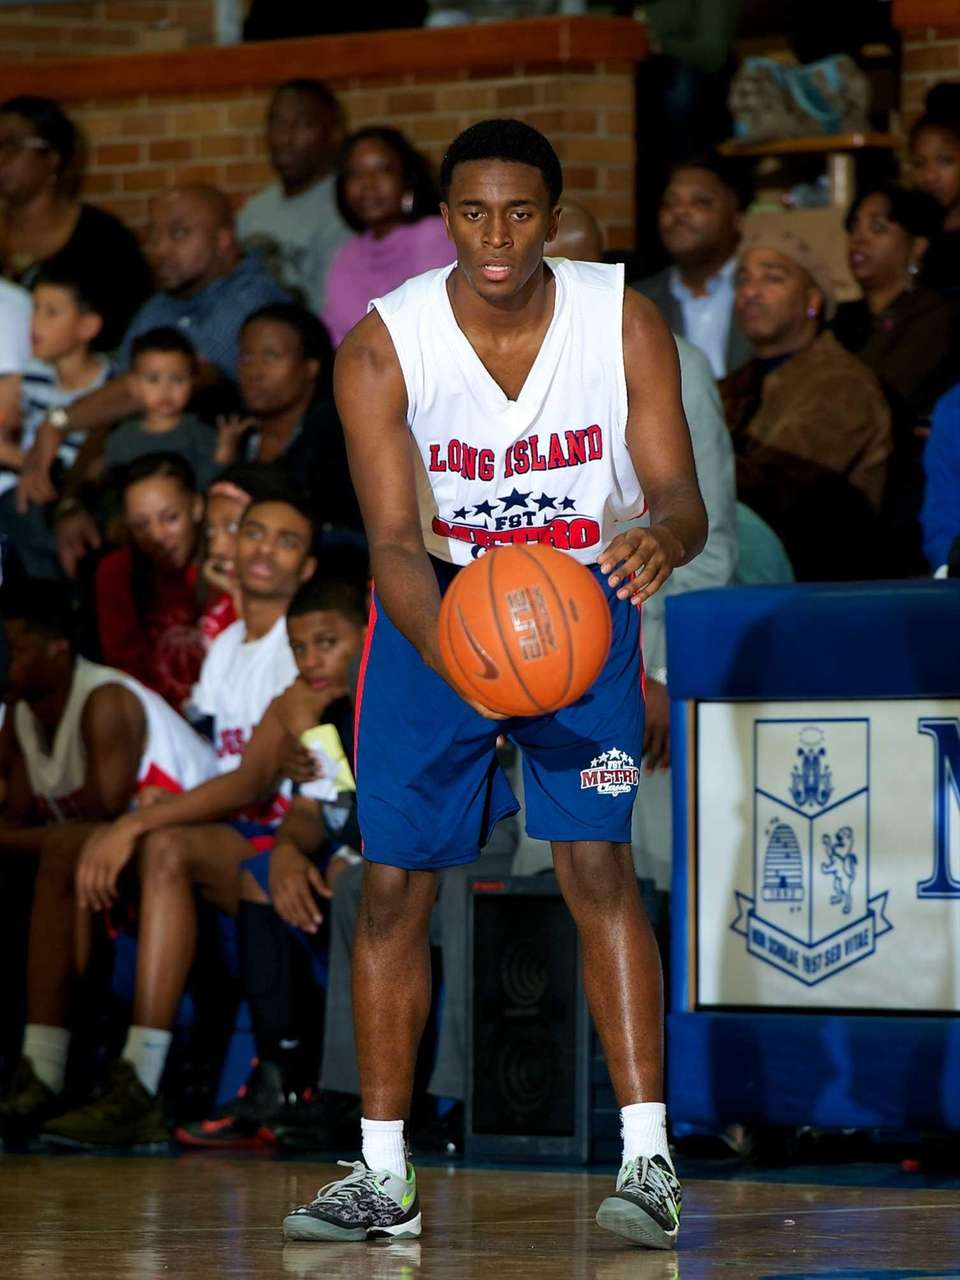 Kobie Eubanks, a Long Island All-Star forward from